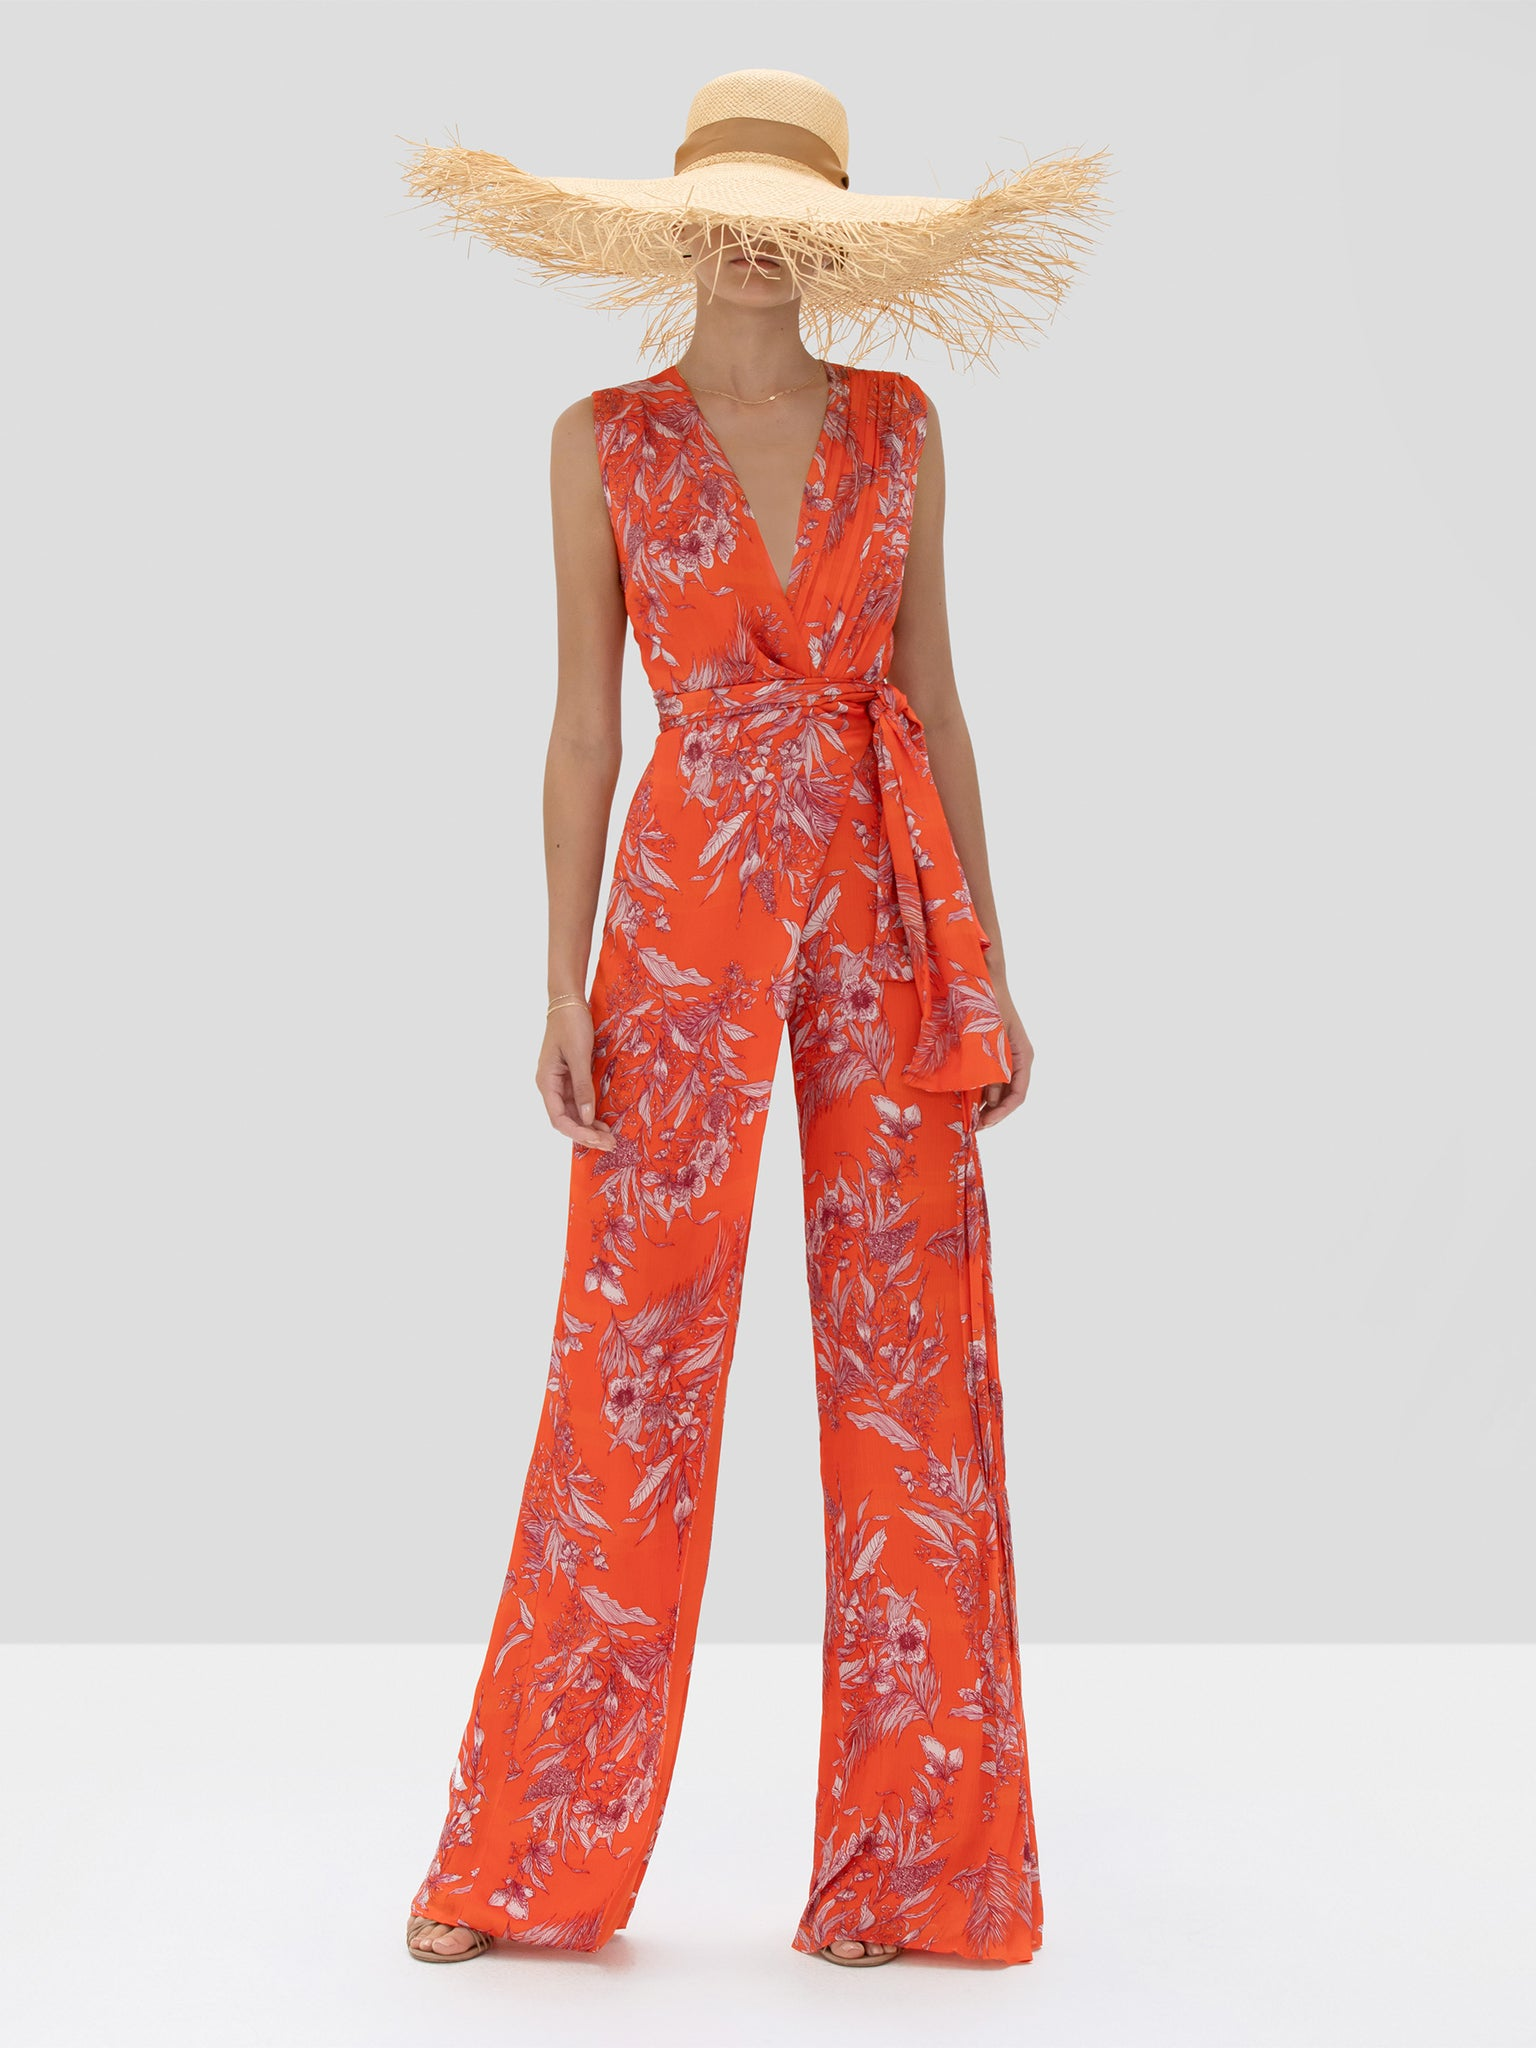 Alexis Kamiko Jumpsuit in Mandarin Palm from the Spring Summer 2020 Collection